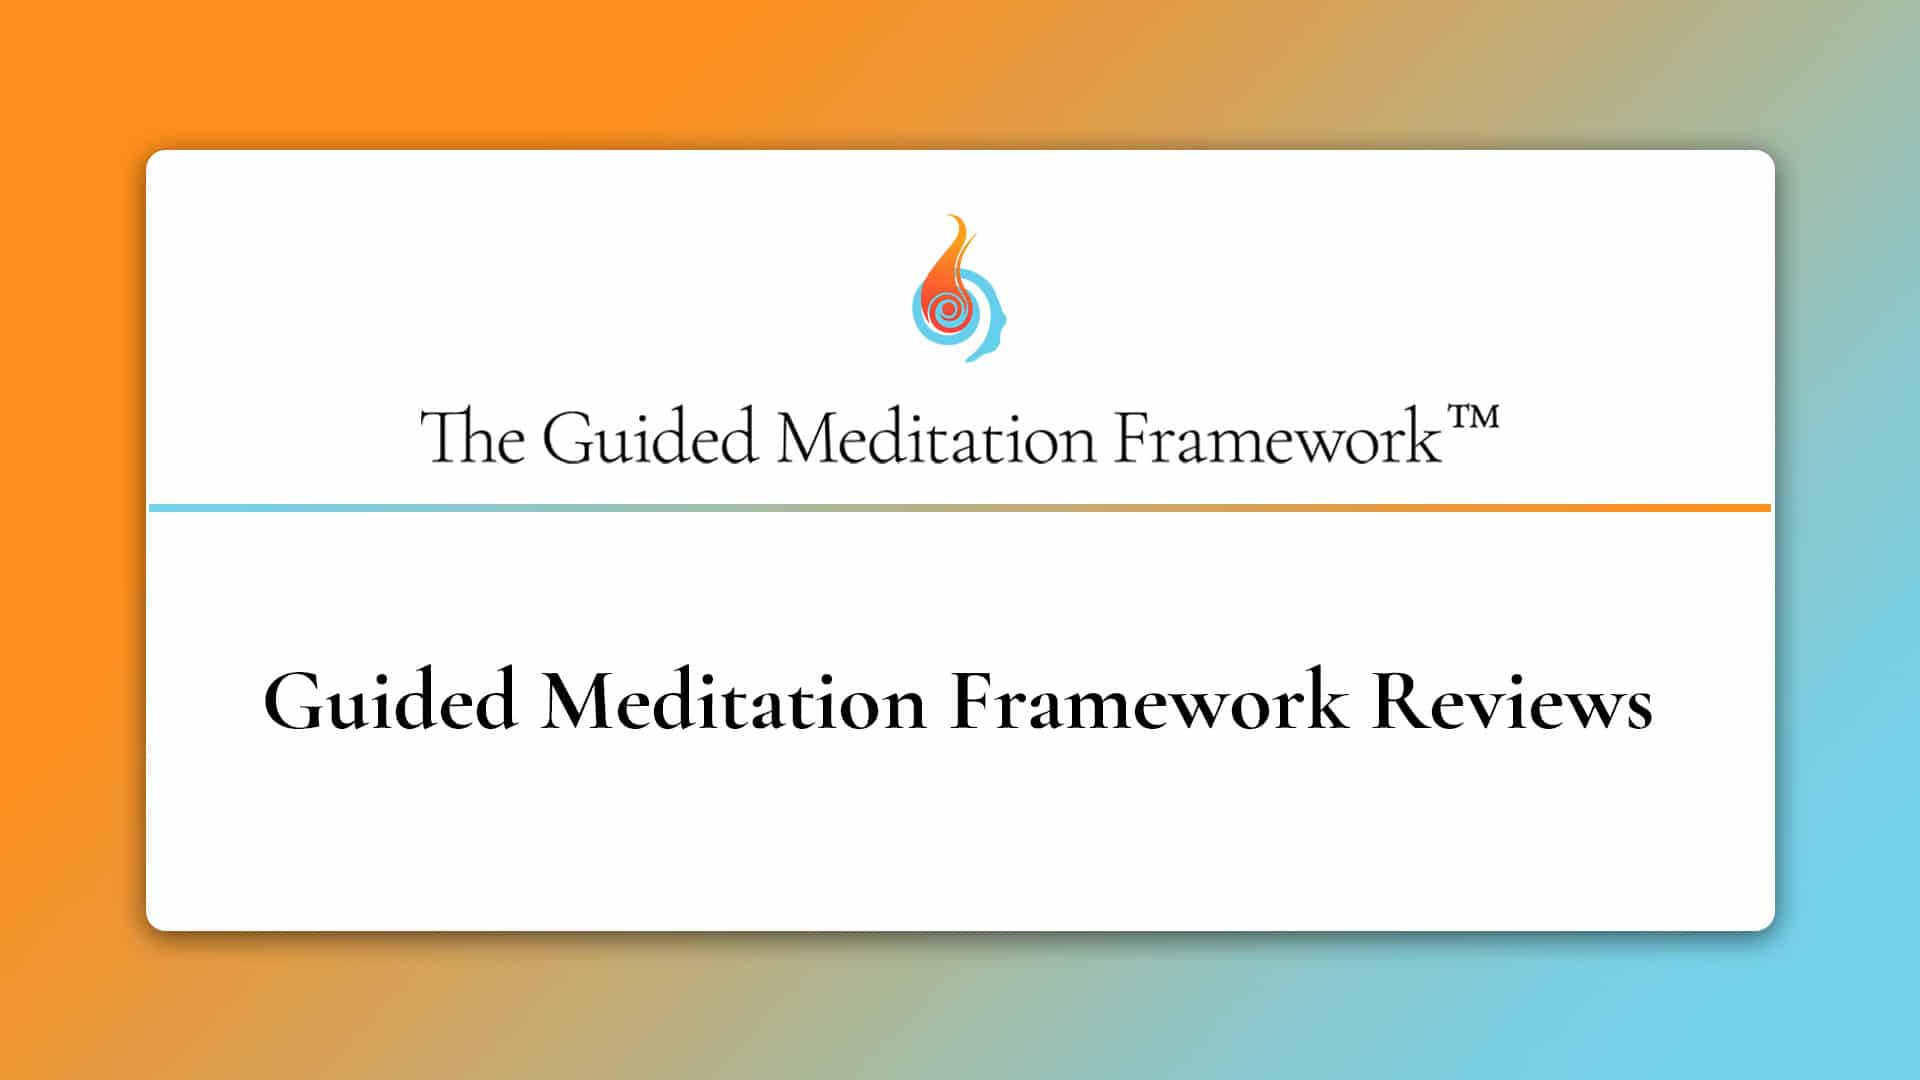 The Guided Meditation Framework reviews